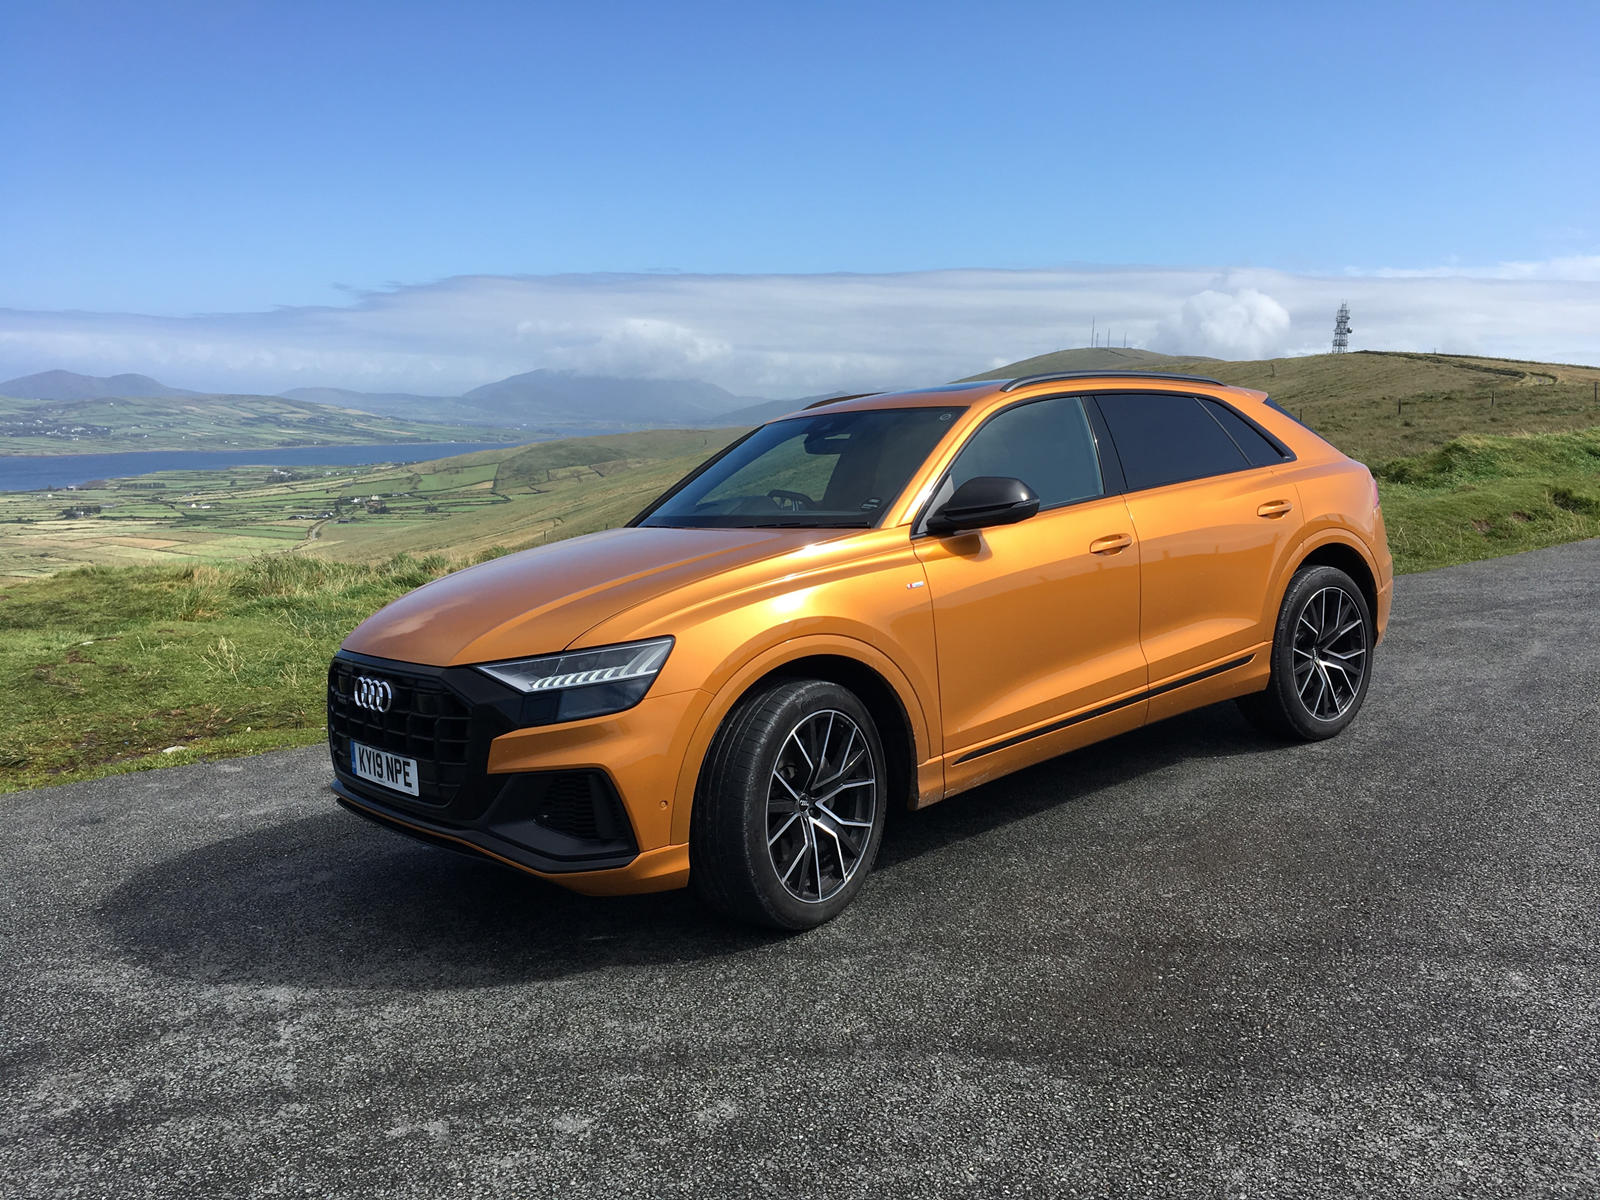 2019 Audi Q8 Review, Trims, Specs and Price | CarBuzz